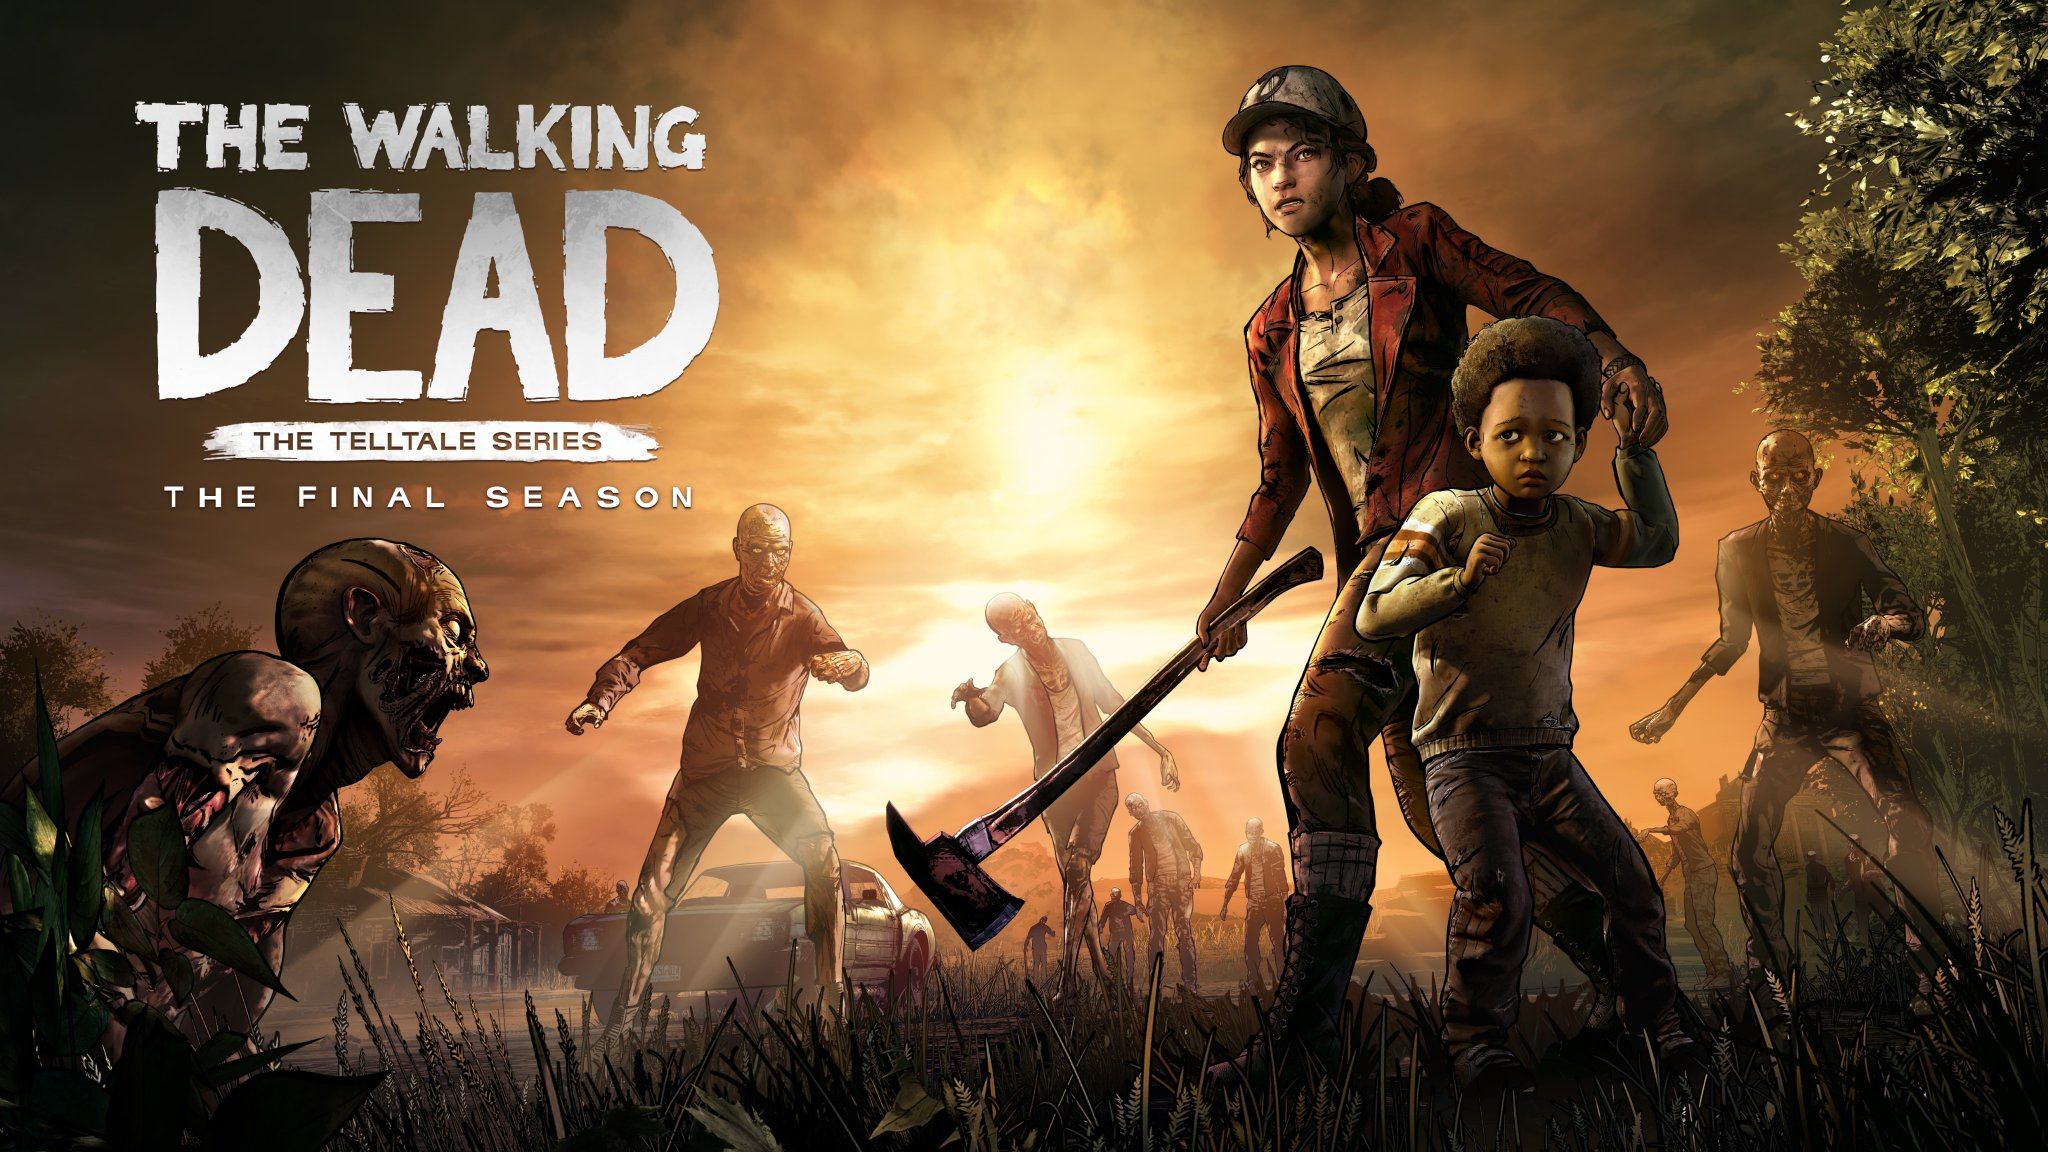 The Waking Dead: The Final Season Episode 1 review – Done Running